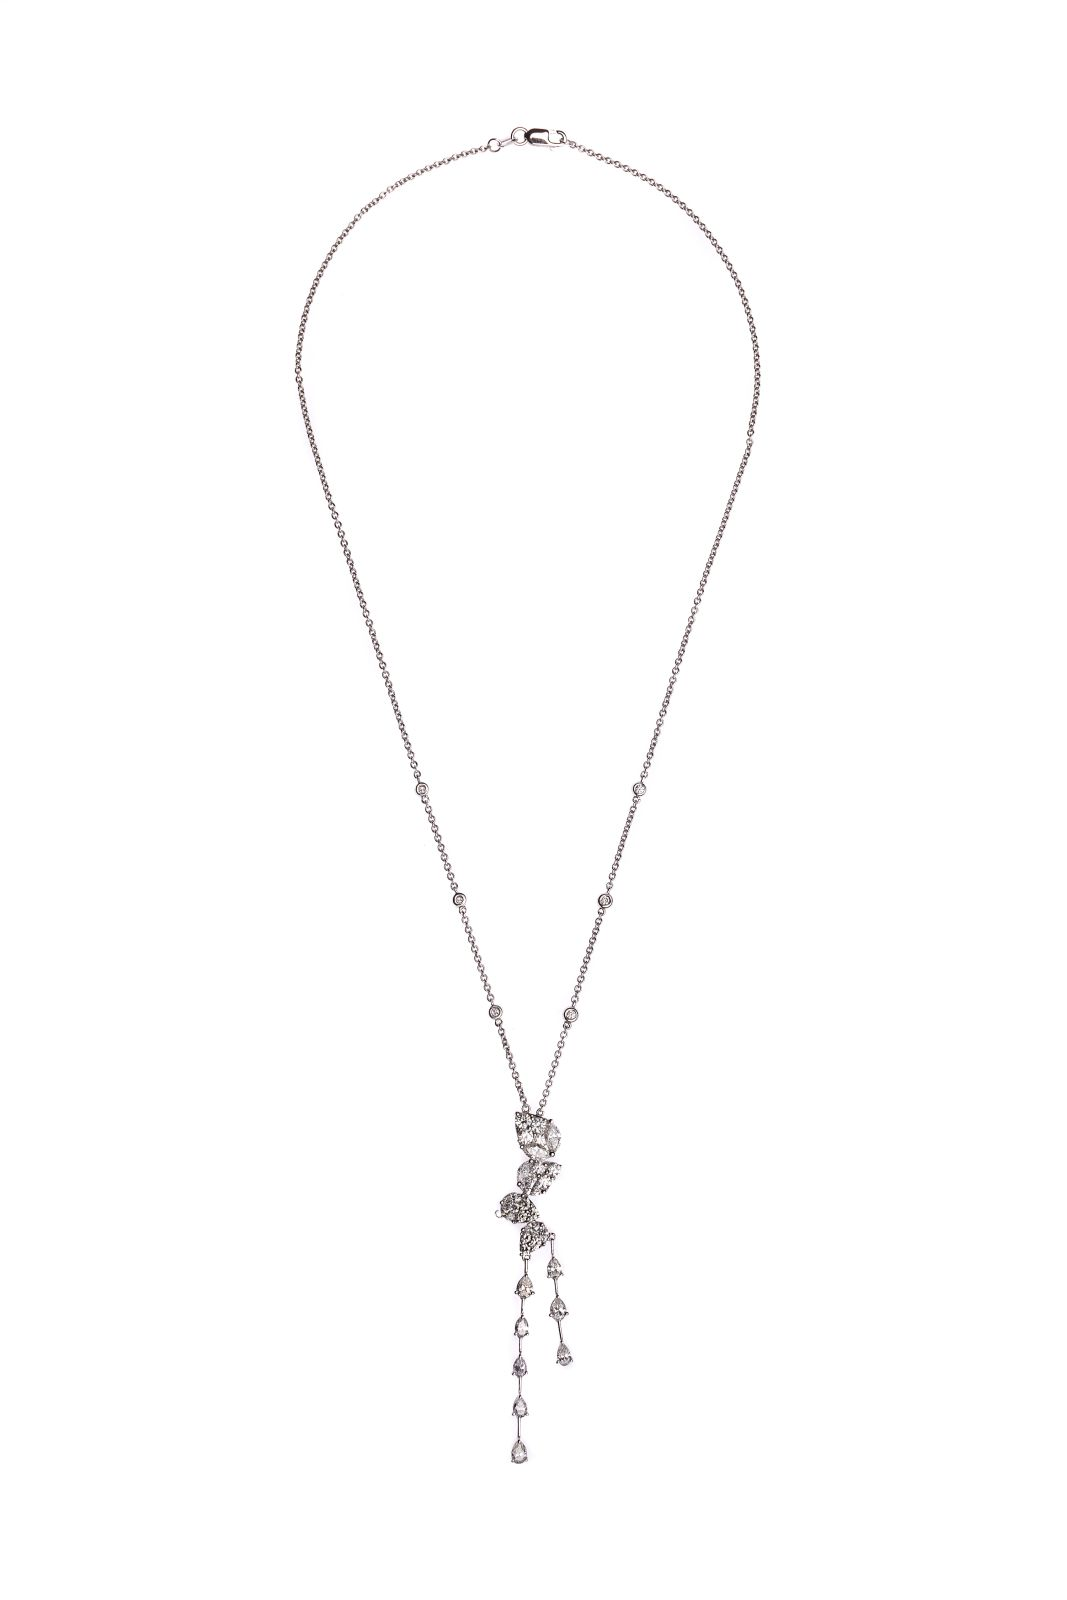 #70 Necklace diamonds | Collier Image